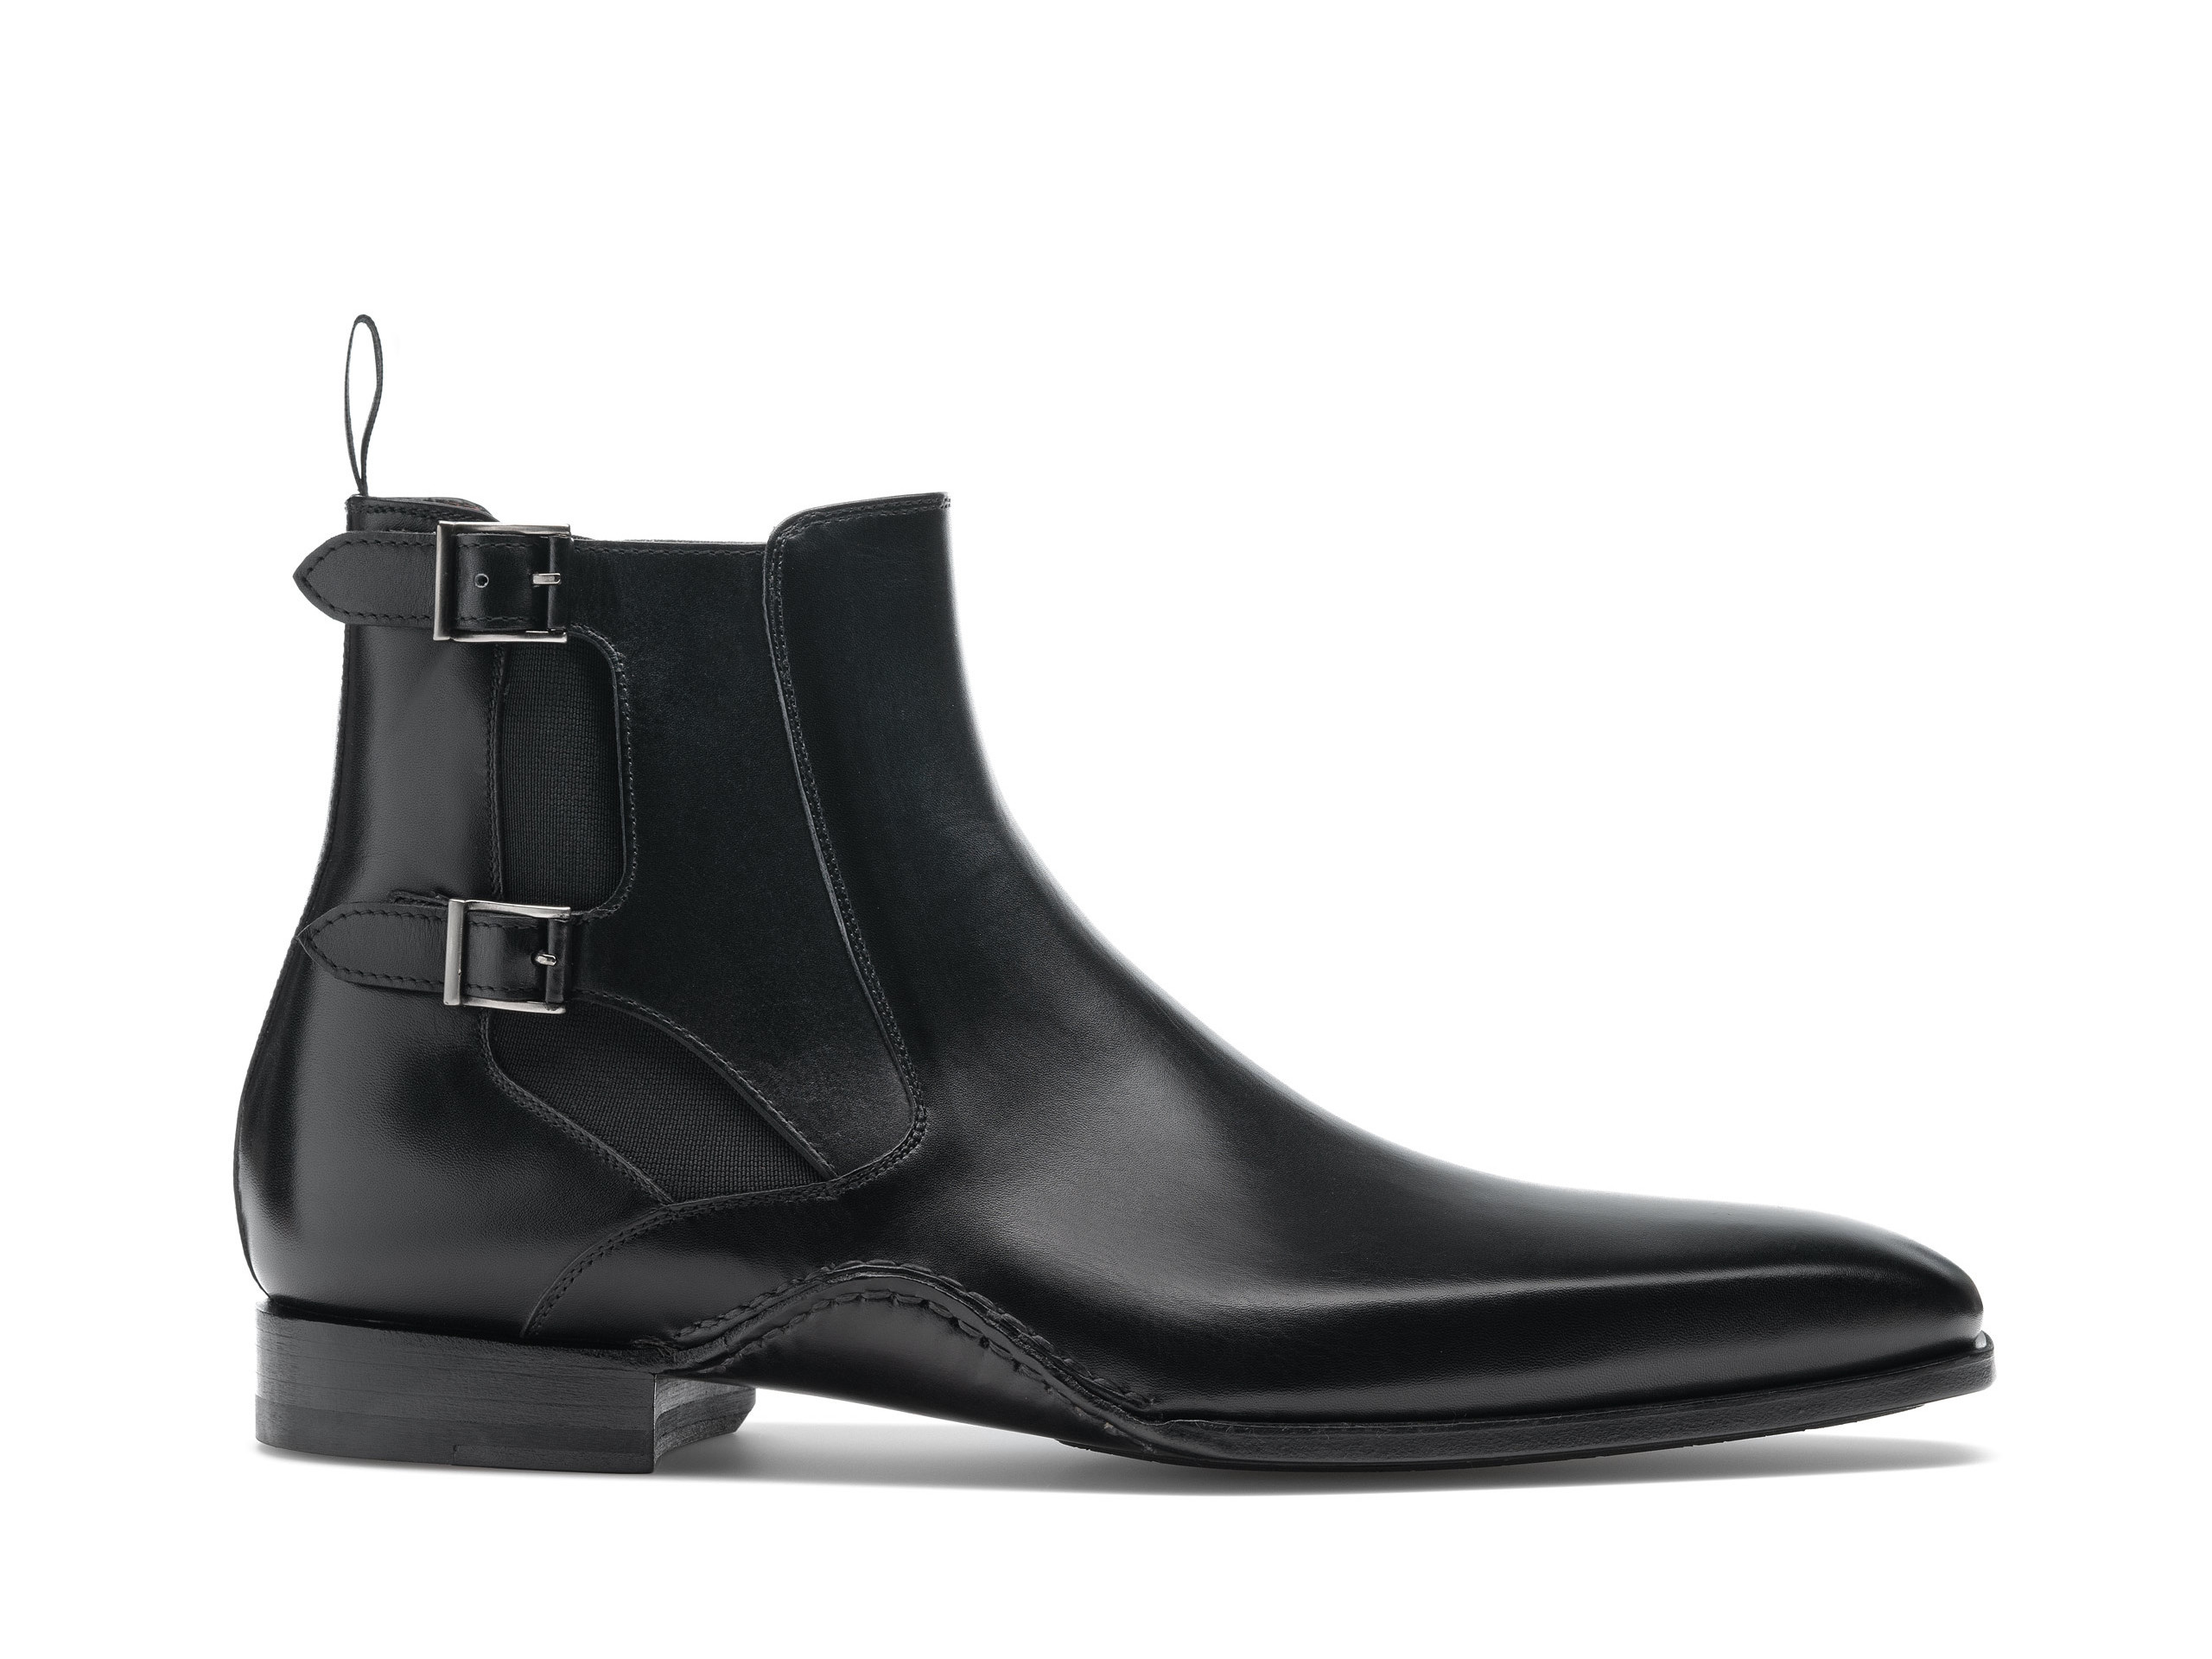 Side view of the Magnanni Grant Black Men's Leather Chelsea Boots